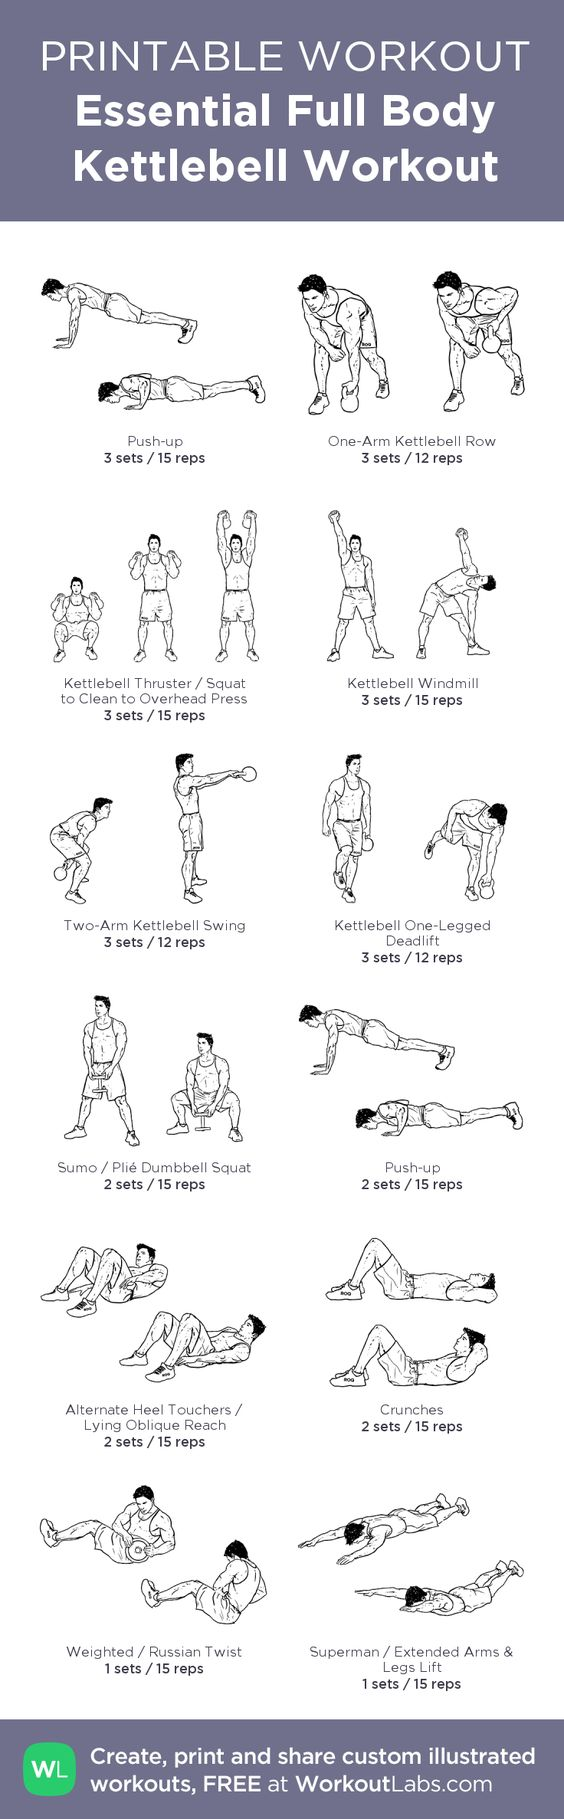 Essential Full Body Kettle Bell Workout